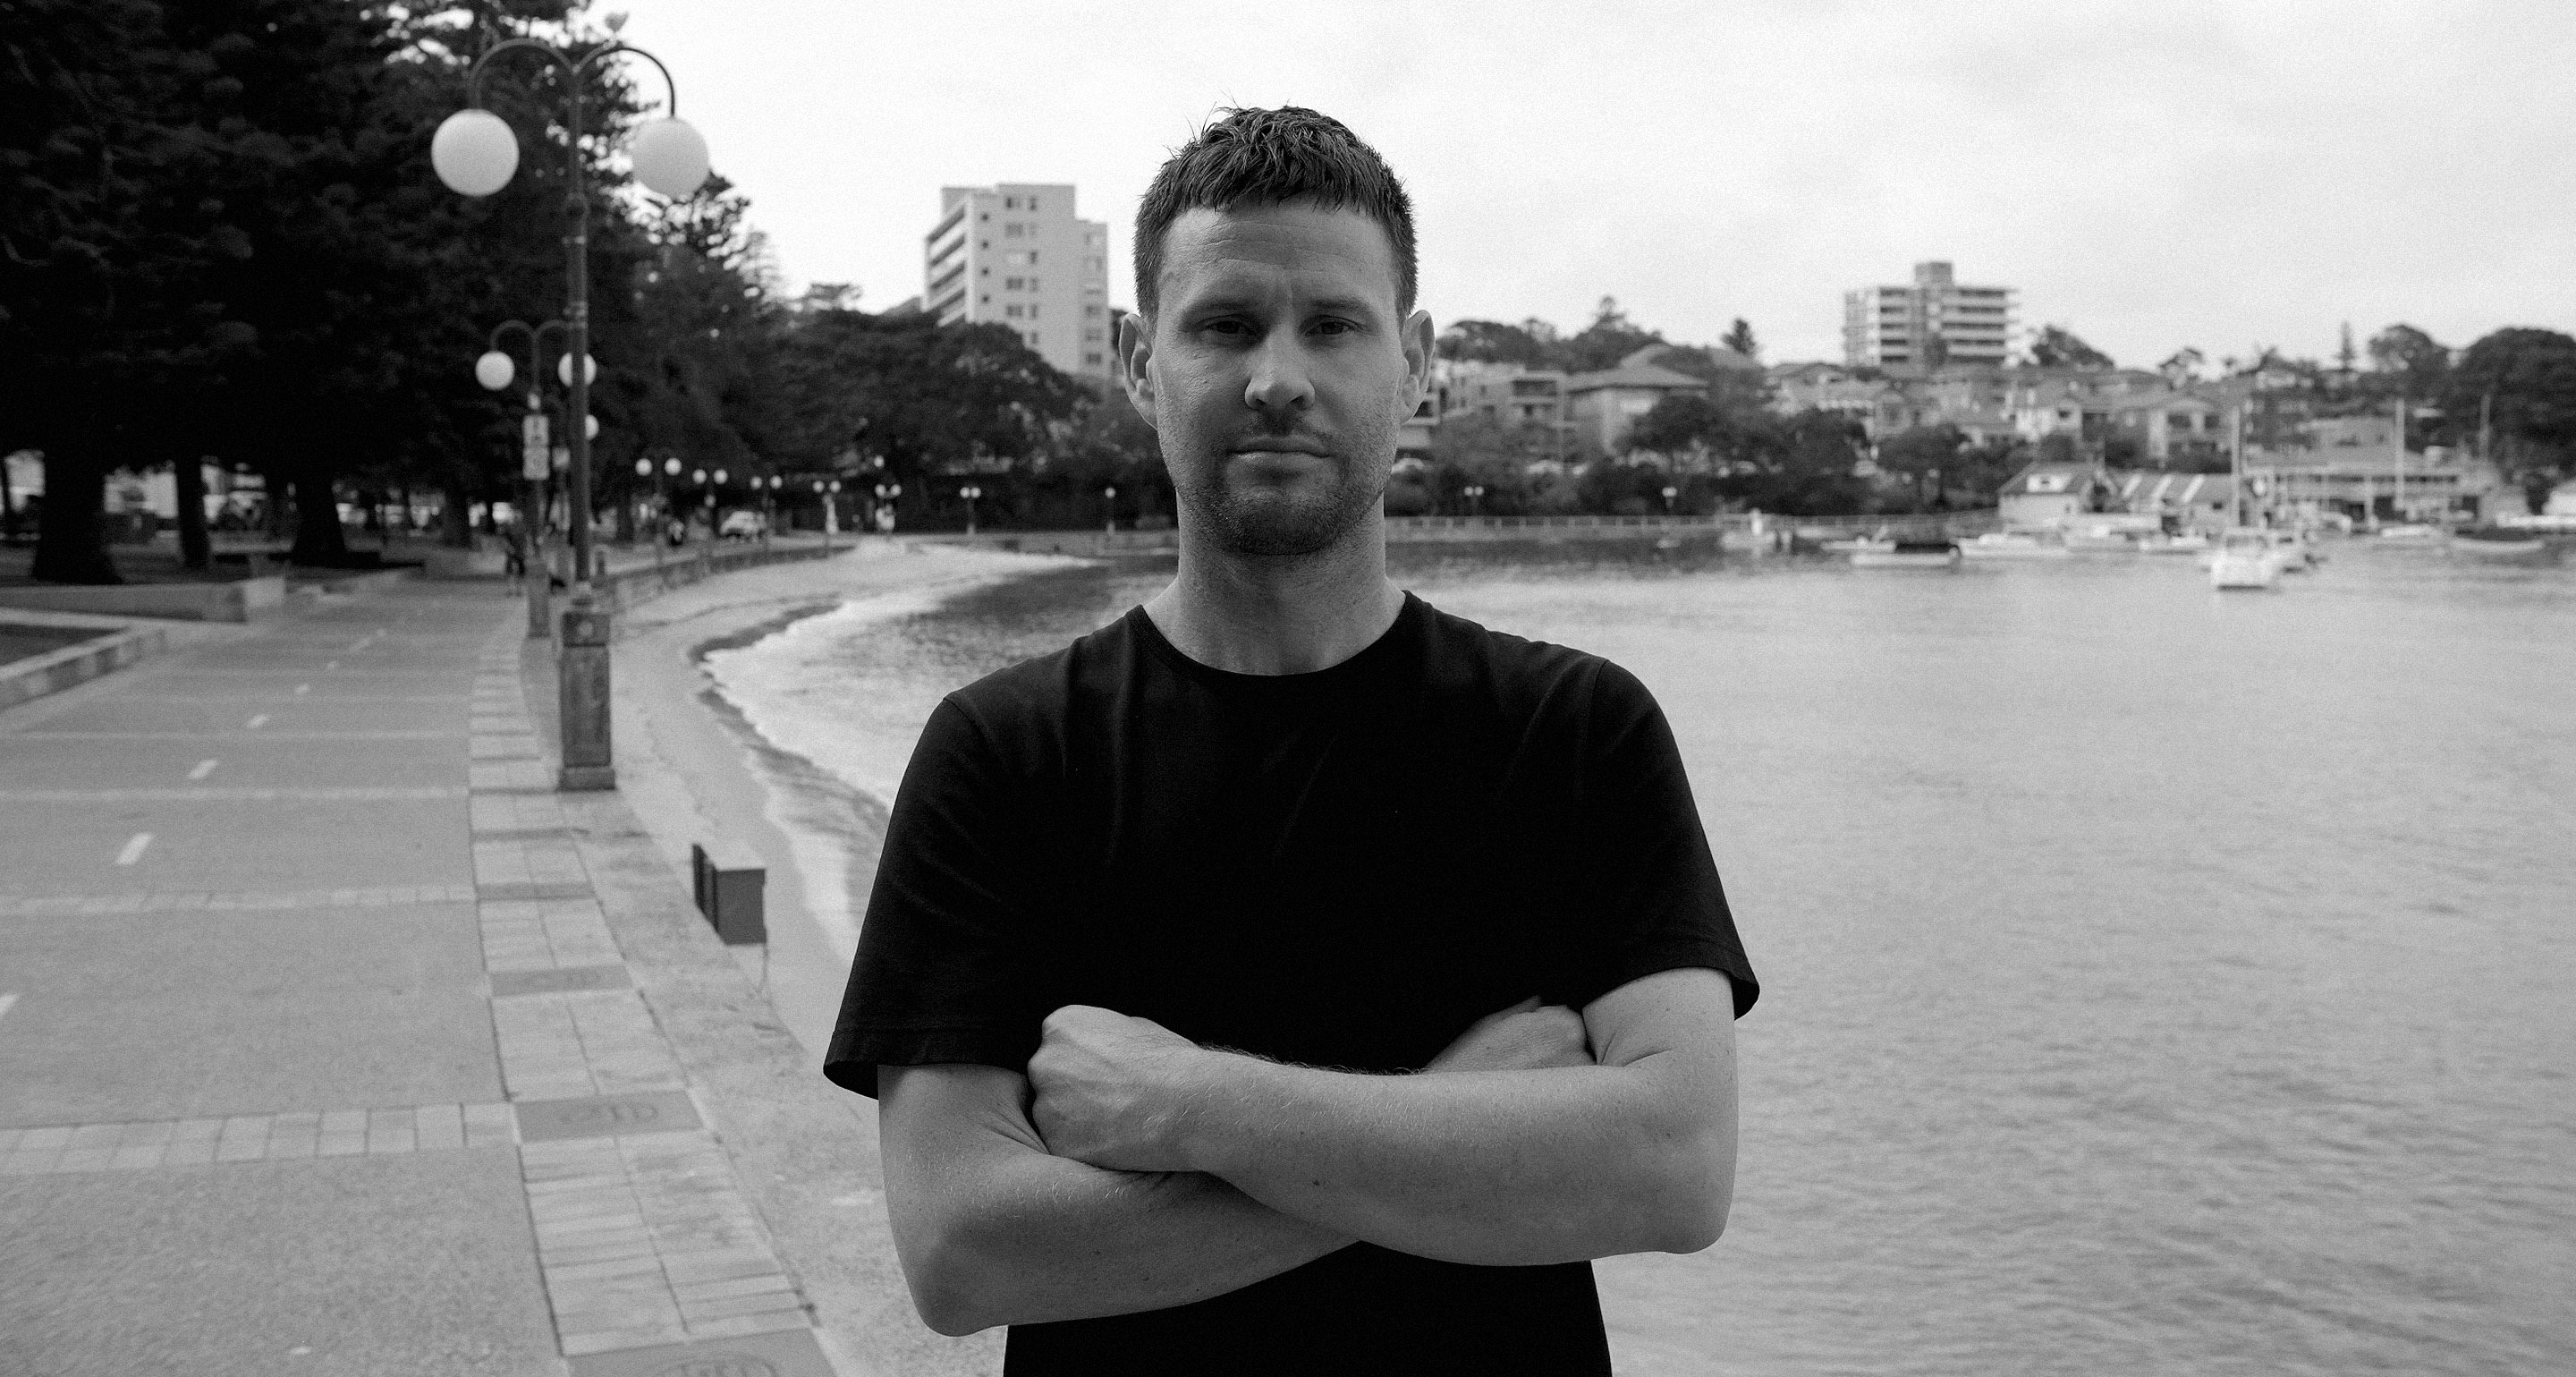 72andSunny Sydney appoints Ex Apple and Facebook creative Luke Martin as head of product